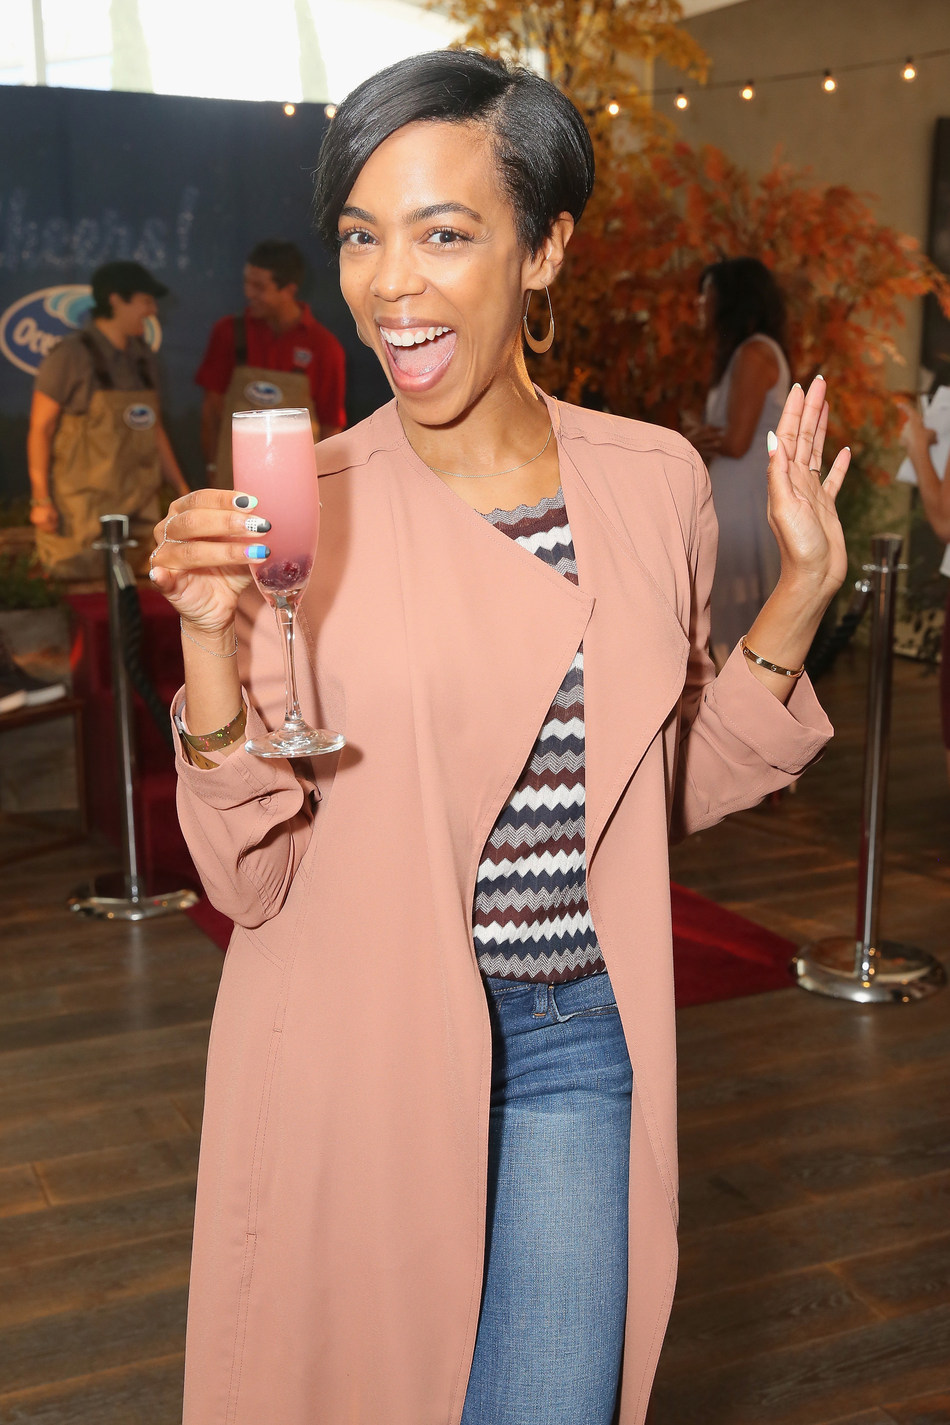 Ballers actress Jazmyn Simon sips like the star she is at the Kari Feinstein Style Lounge Thursday, Sept. 14 in Los Angeles. The Chuckle Chaser cranberry cocktail by Ocean Spray kept guests smiling all day. (PRNewsfoto/Ocean Spray)